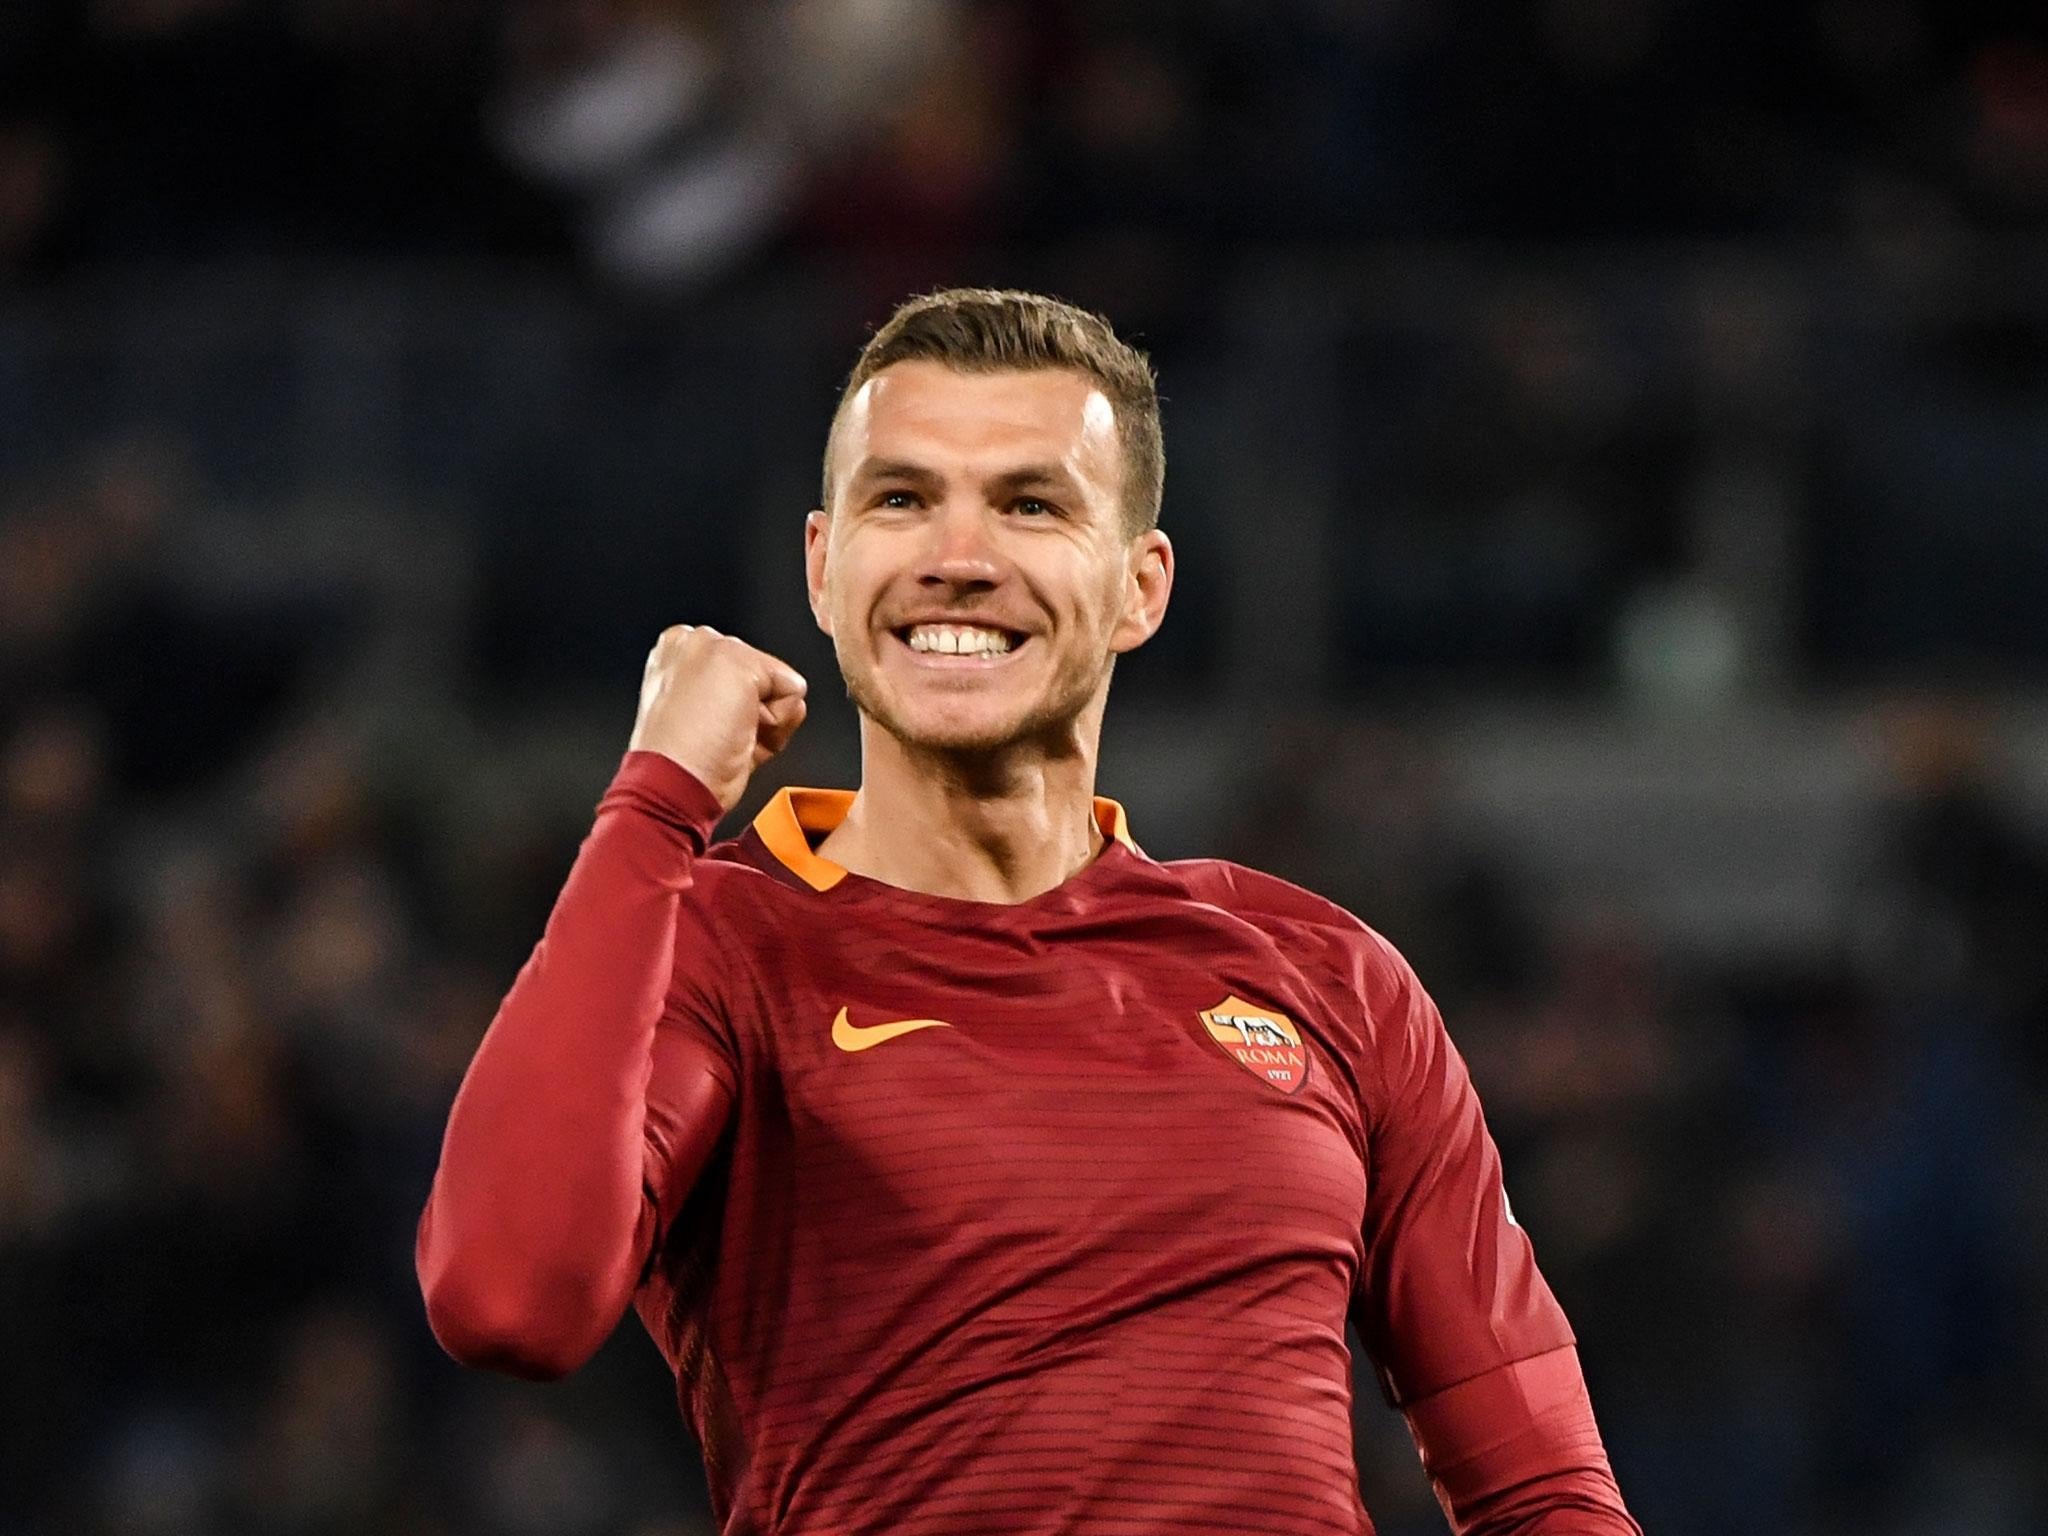 Edin Dzeko, Manchester City's Forgotten Man, On 'smart' Football, Francesco Totti And His Own